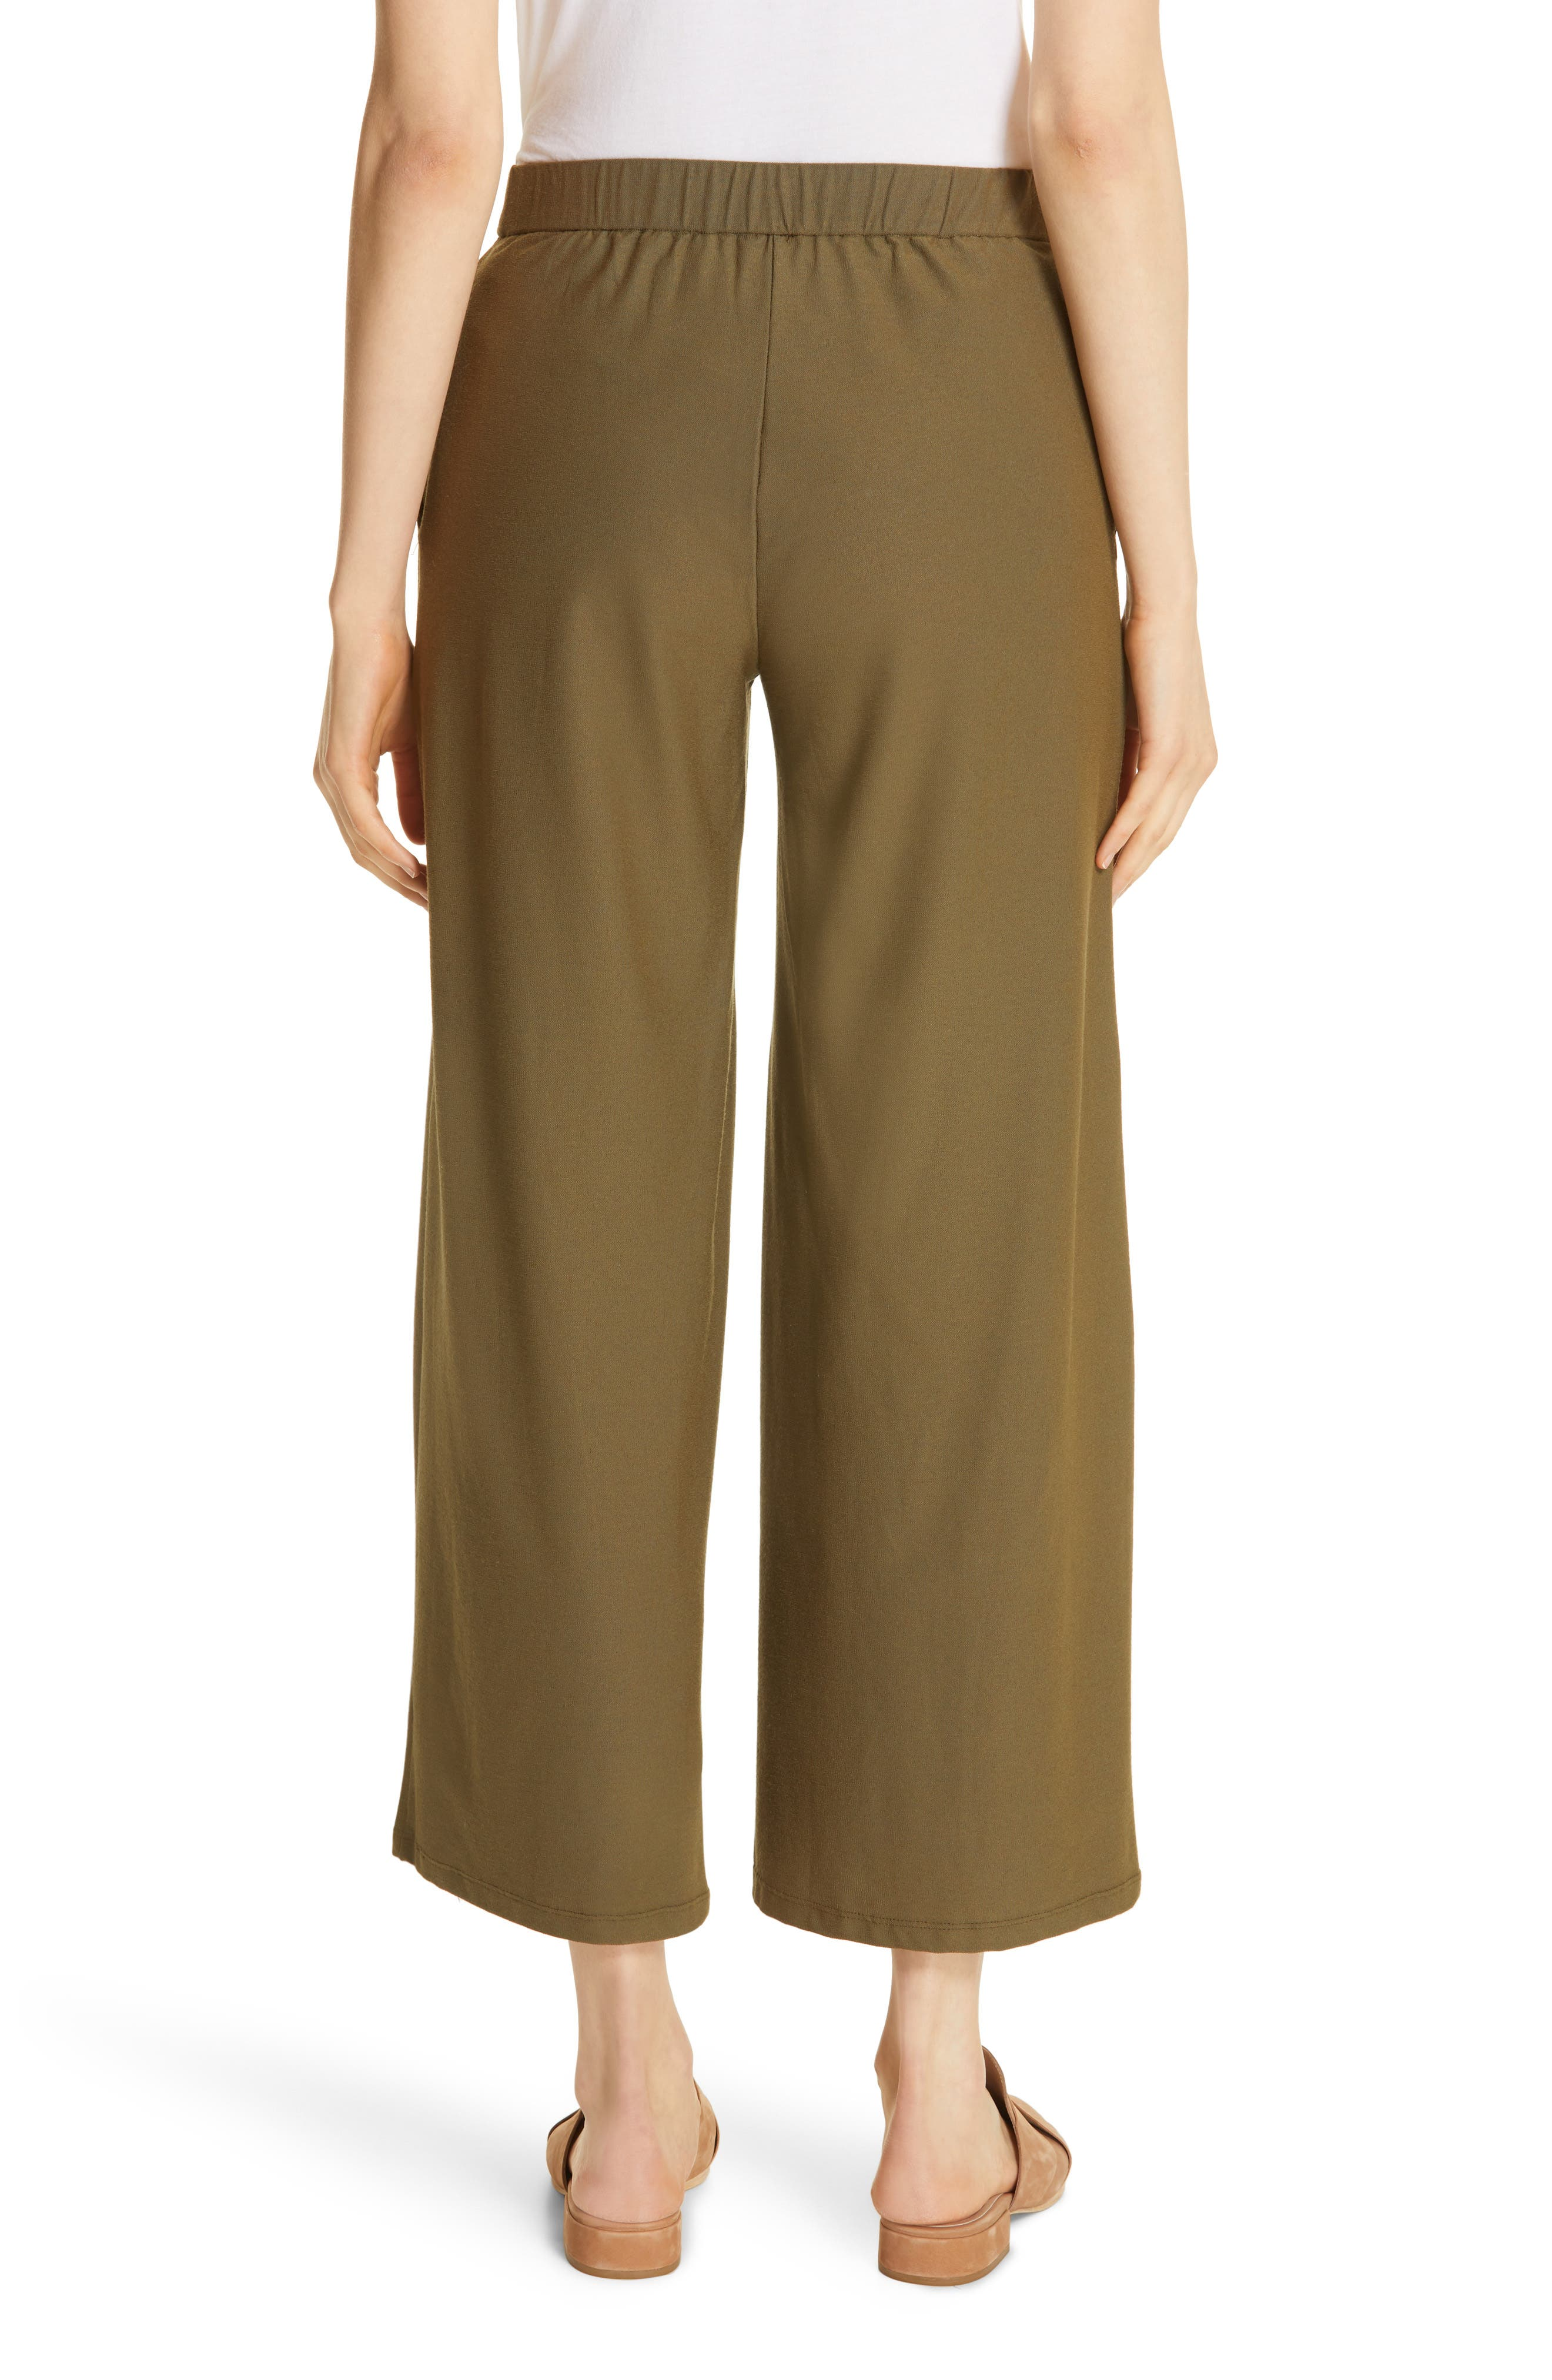 EILEEN FISHER, High Waist Ankle Pants, Alternate thumbnail 2, color, OLIVE